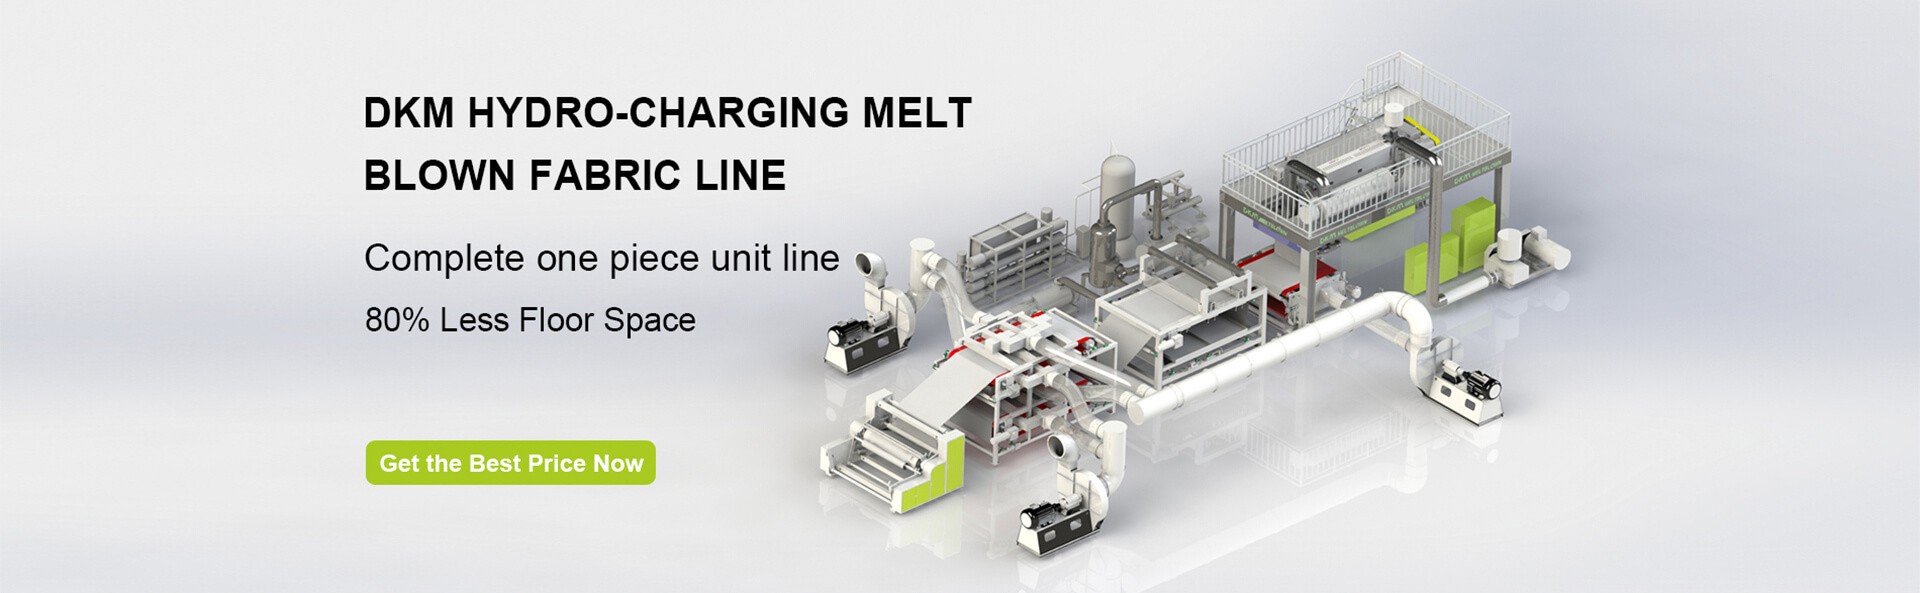 DKM Hydro-Charging Melt Blown Line